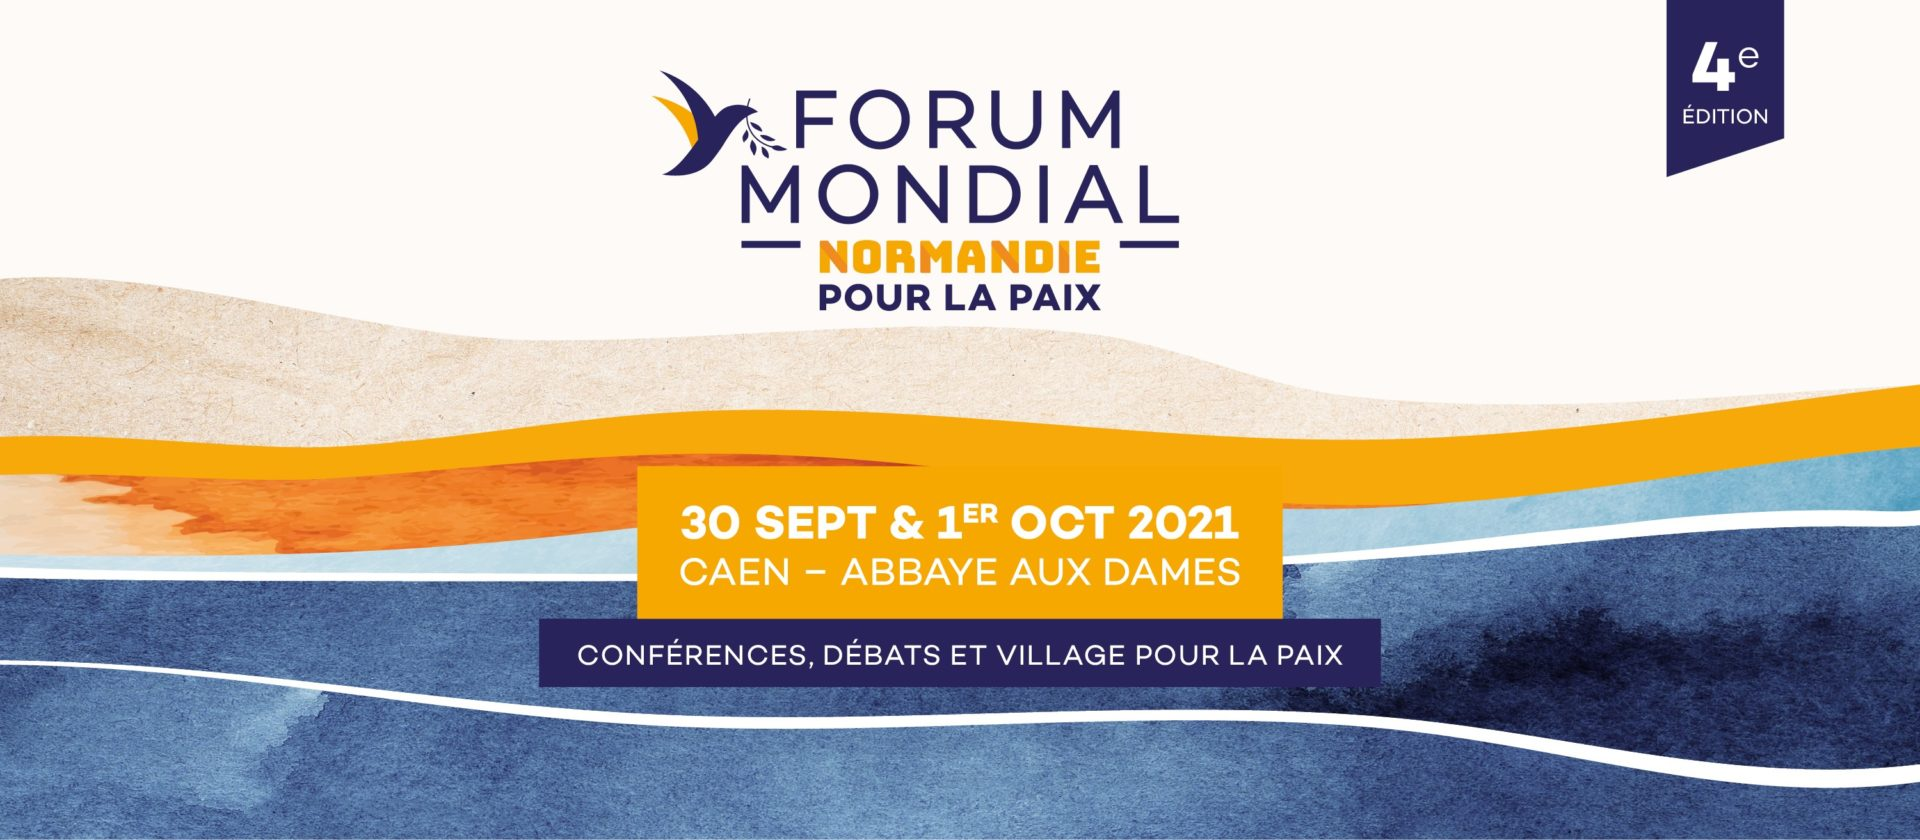 Normandy World Peace Forum : 30 September and 1 October in Caen